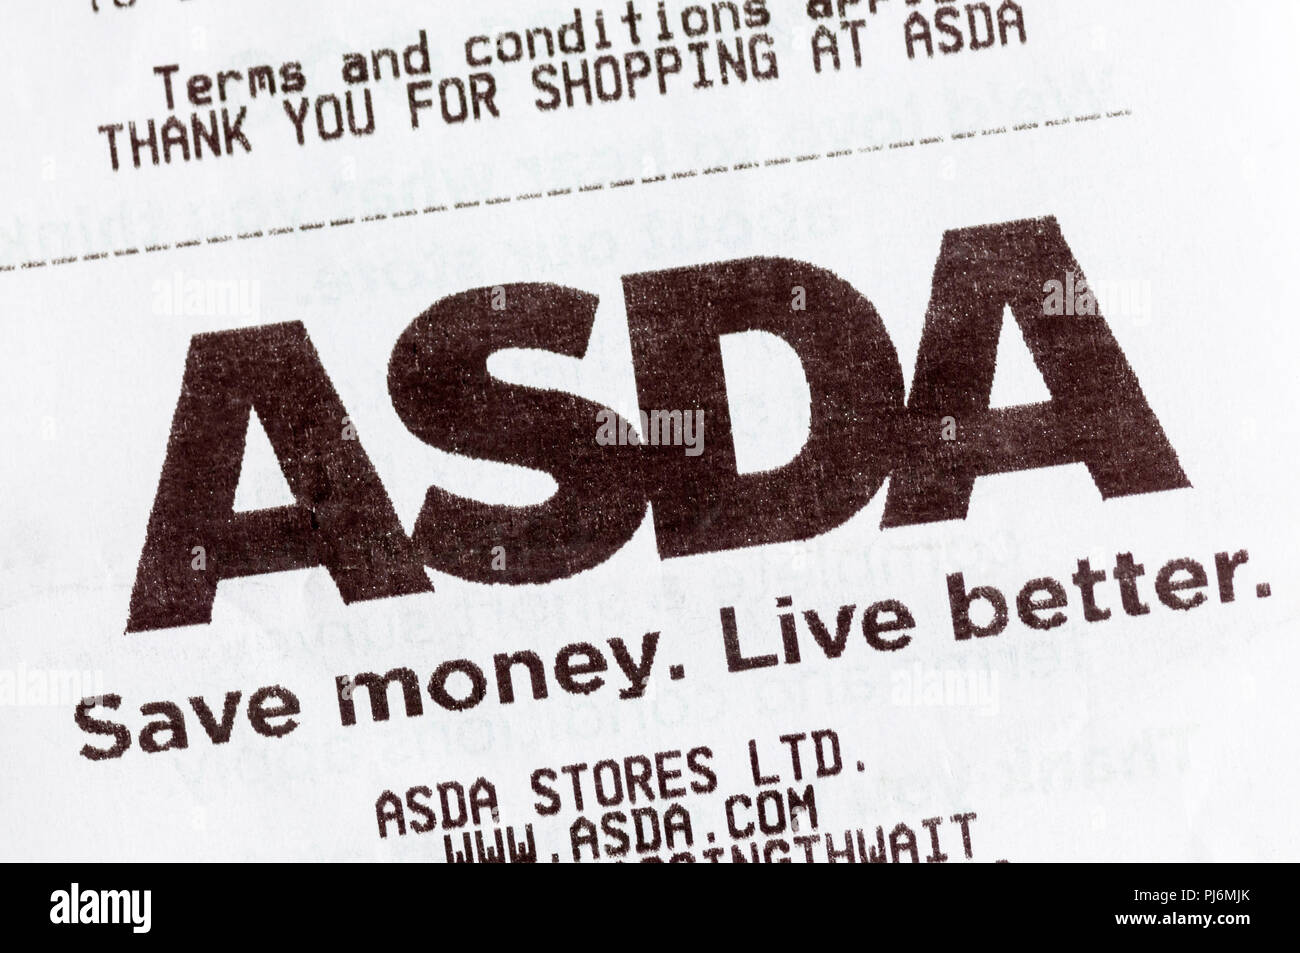 Close-up of Asda Save money Live better slogan printed on a till receipt. - Stock Image